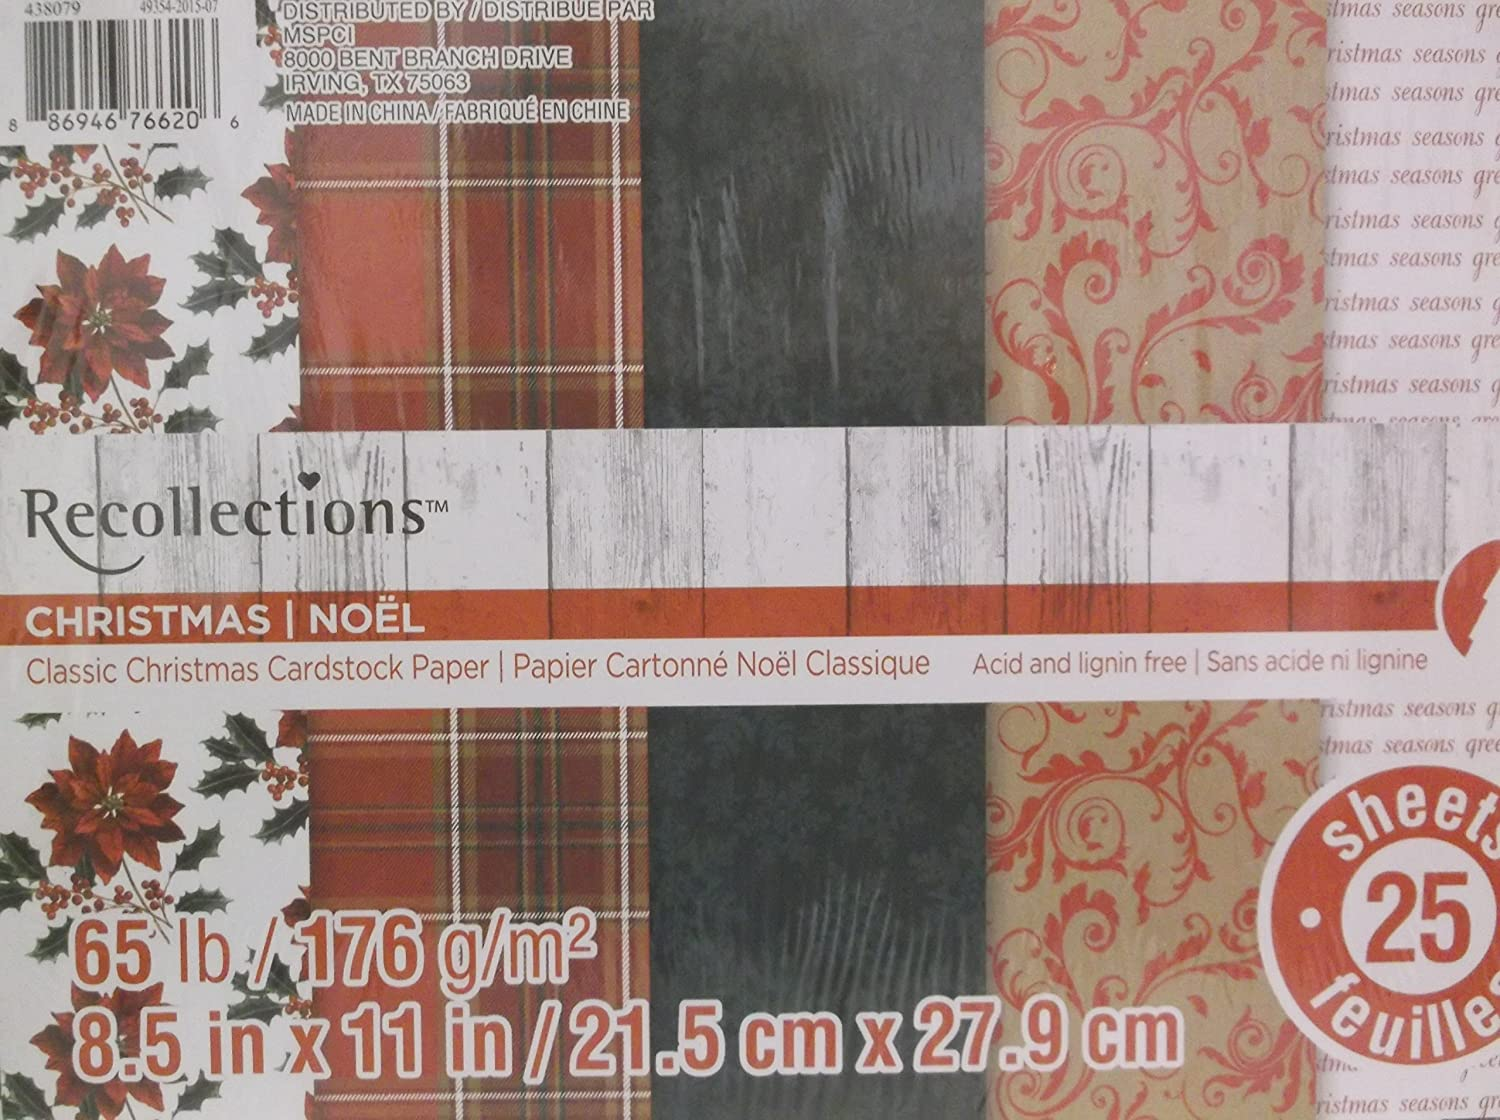 Amazon.com: Recollections *Christmas Holiday* Cardstock Paper 25 ...